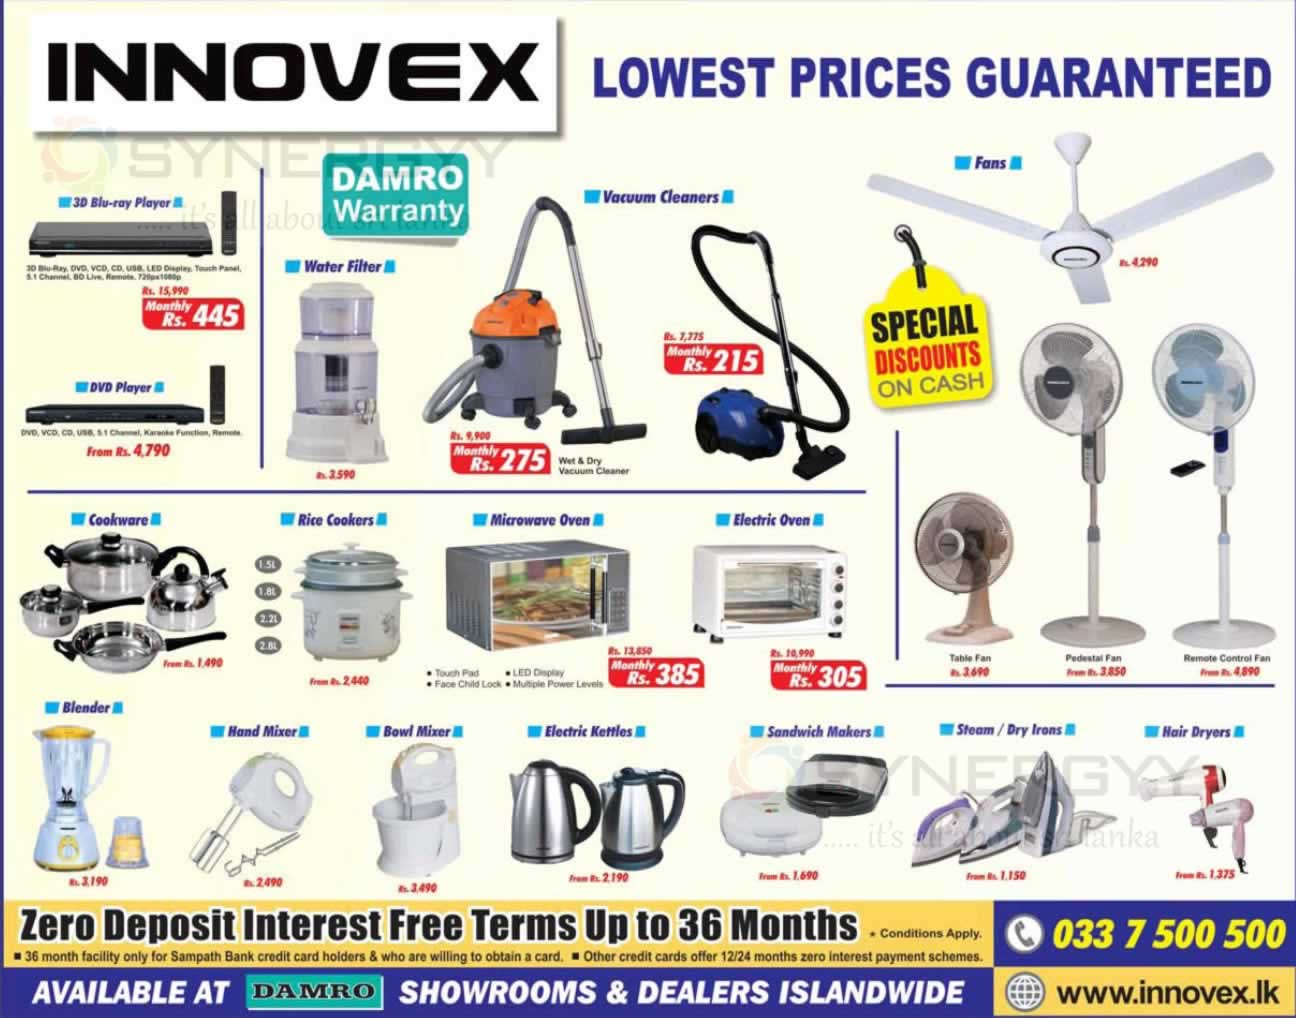 Innovex Lowest Prices Promotion From Damro October